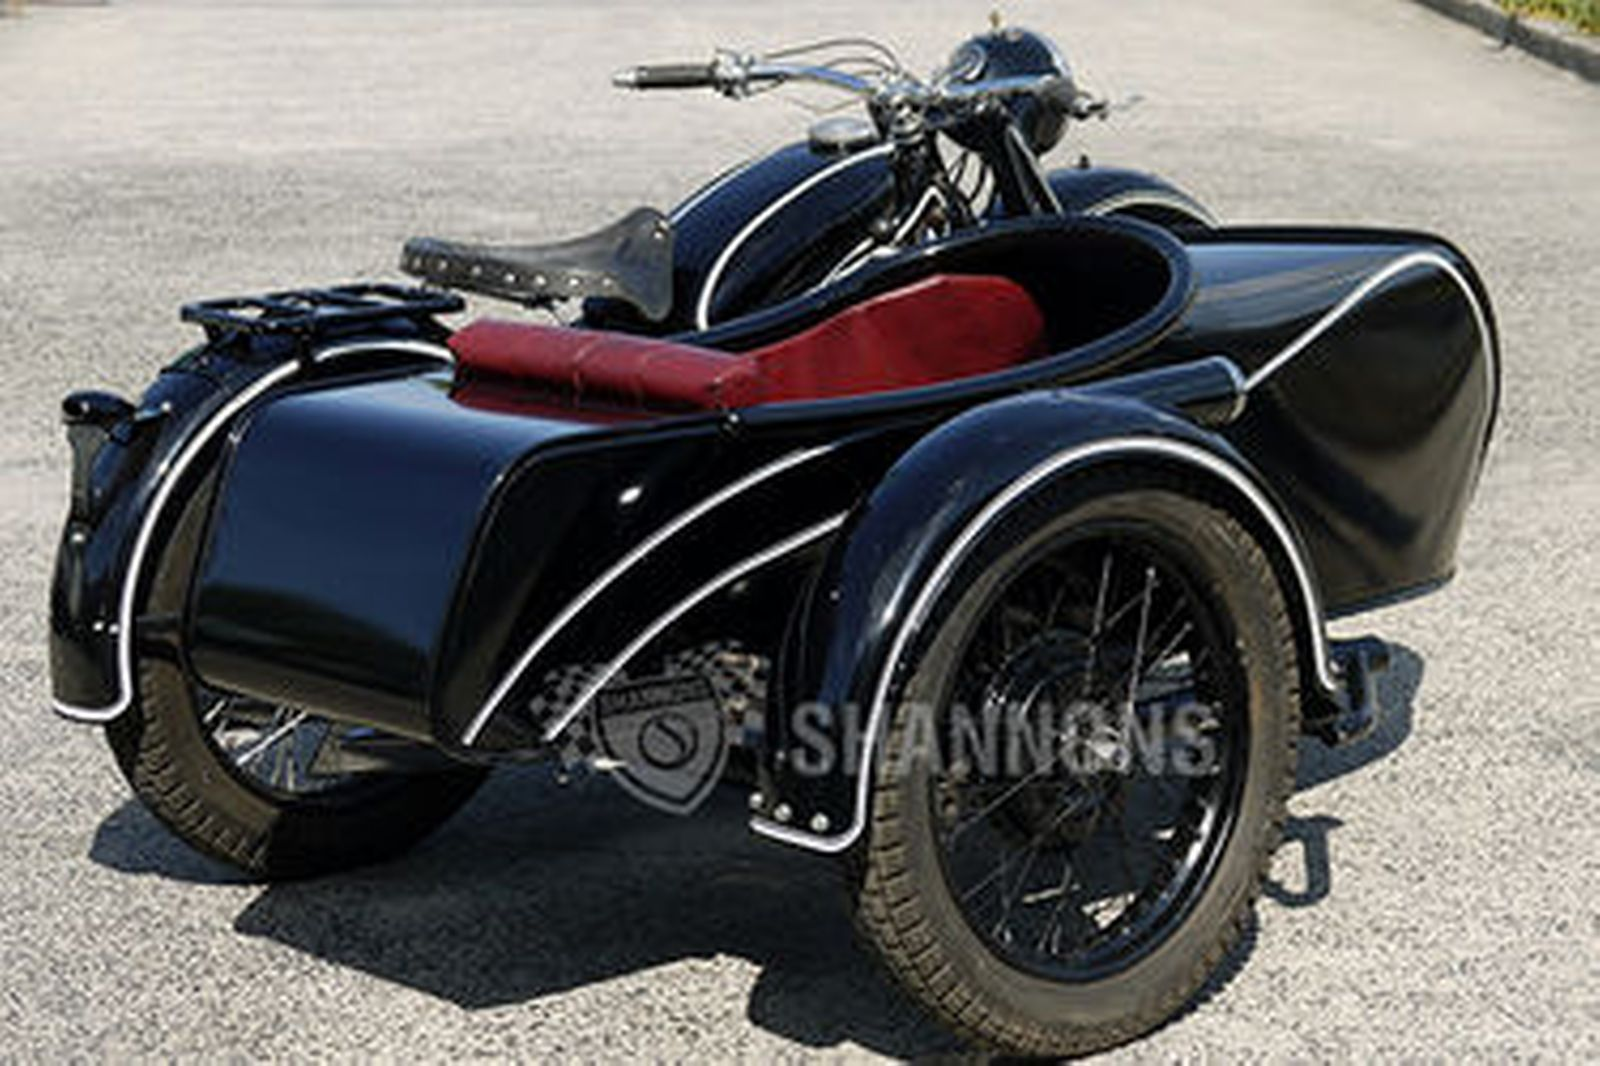 Motorcycle Sidecar Insurance